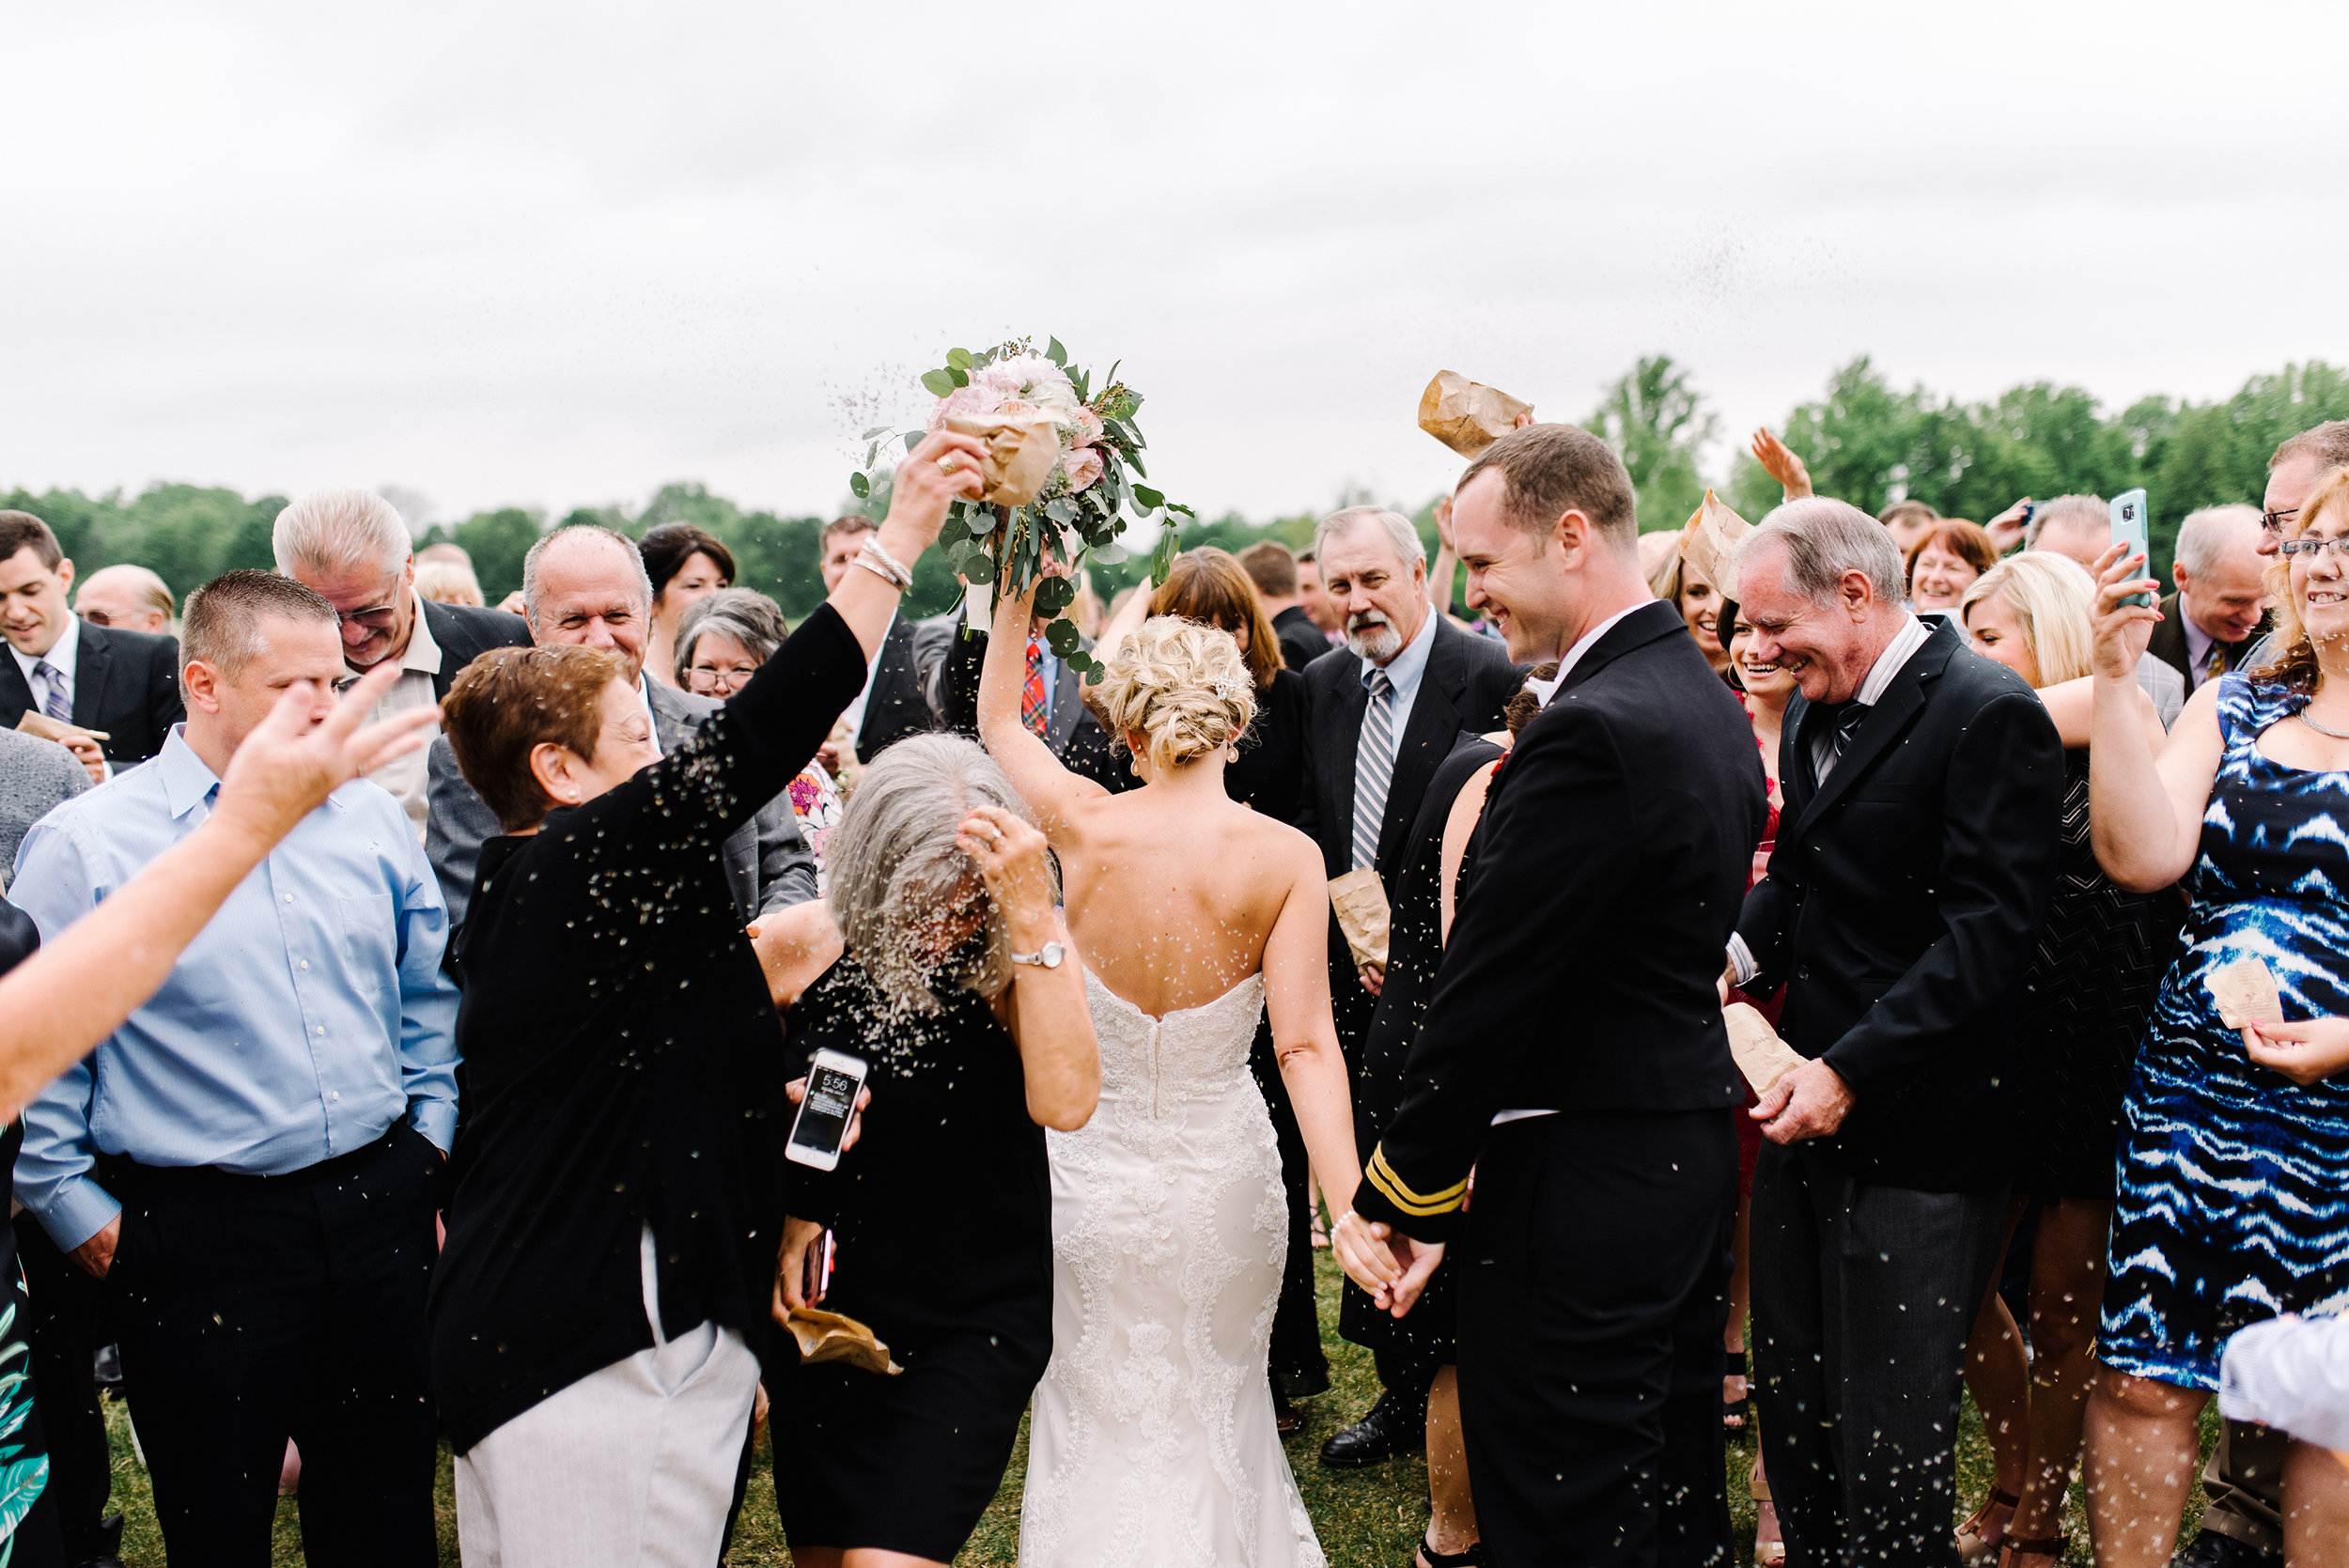 michiganwedding7.jpg